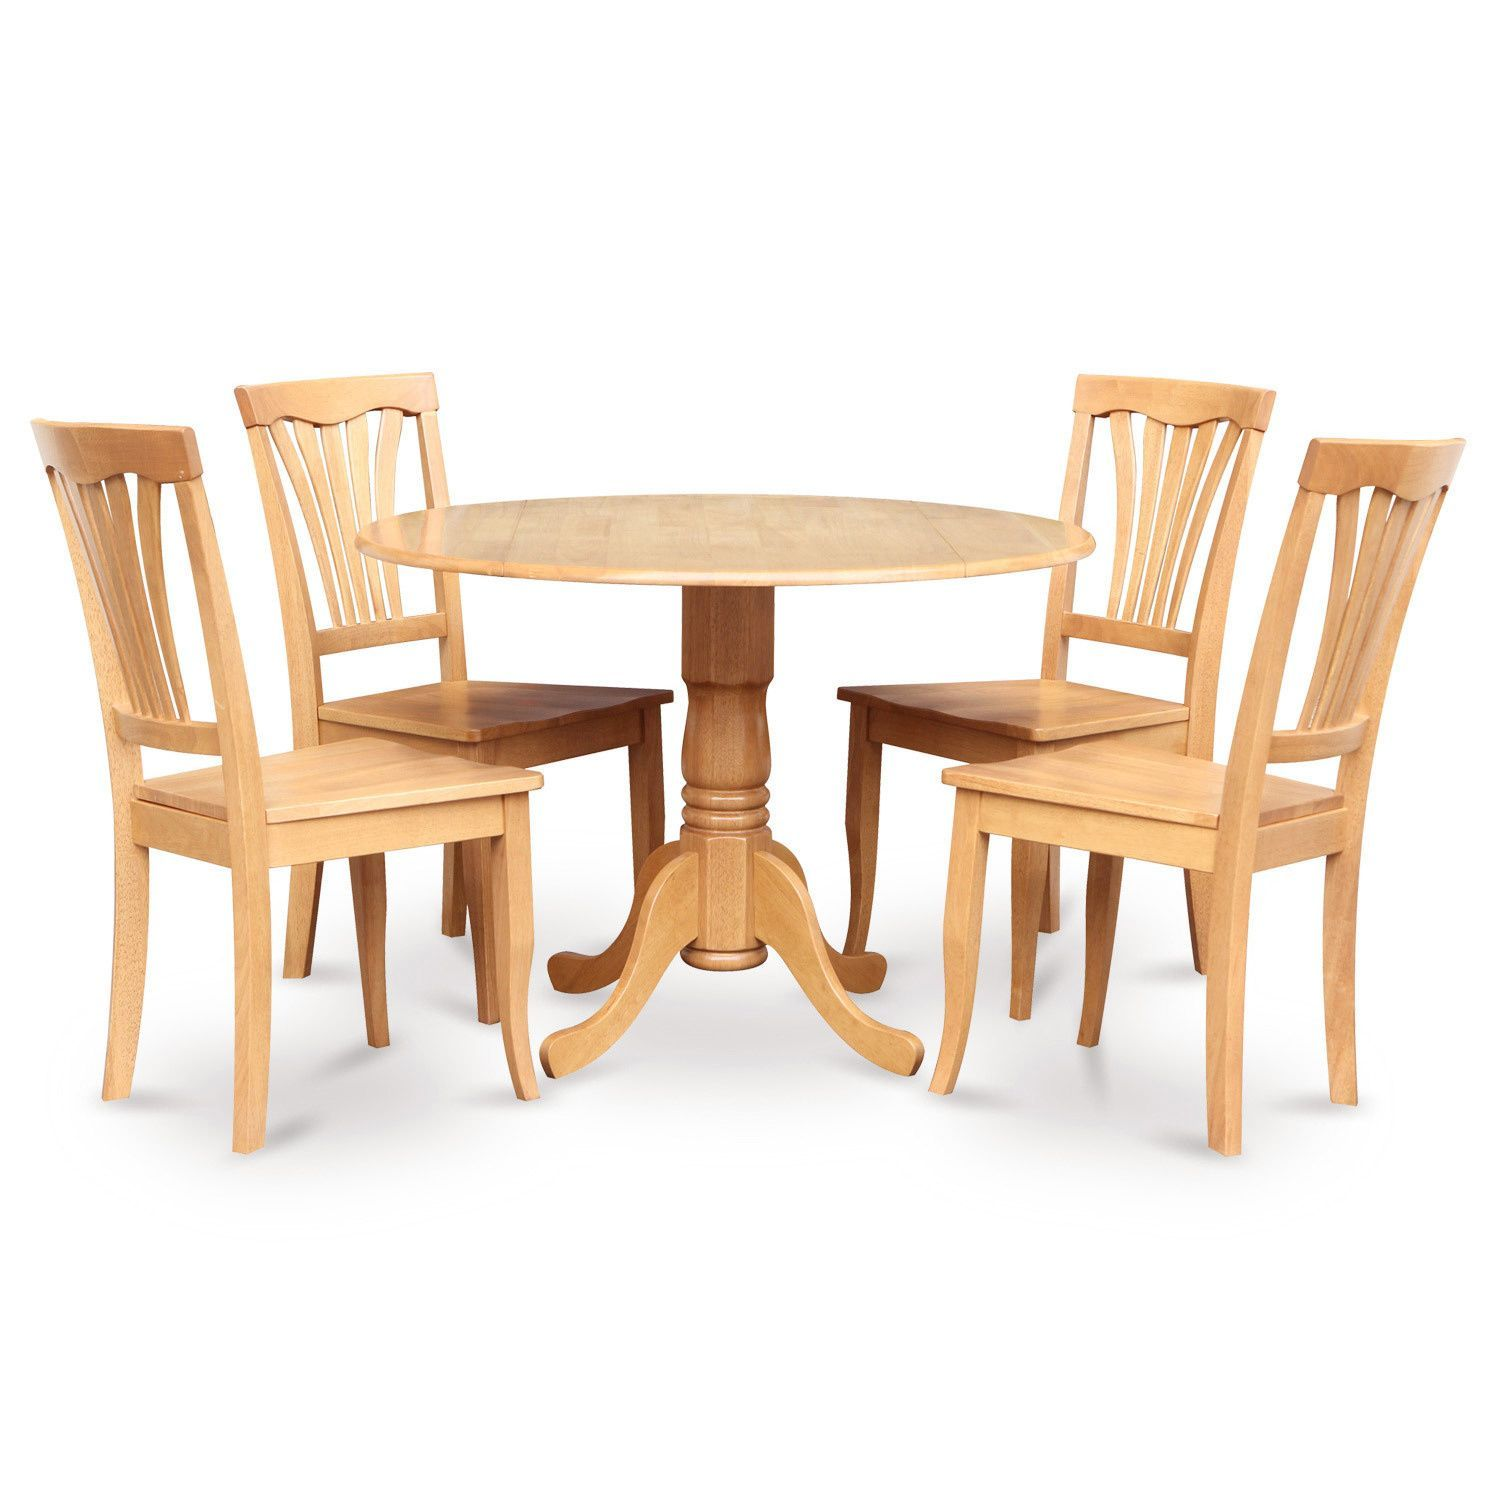 Oak Round Kitchen Table and 4 Kitchen Chairs 5-piece Dining Set ...